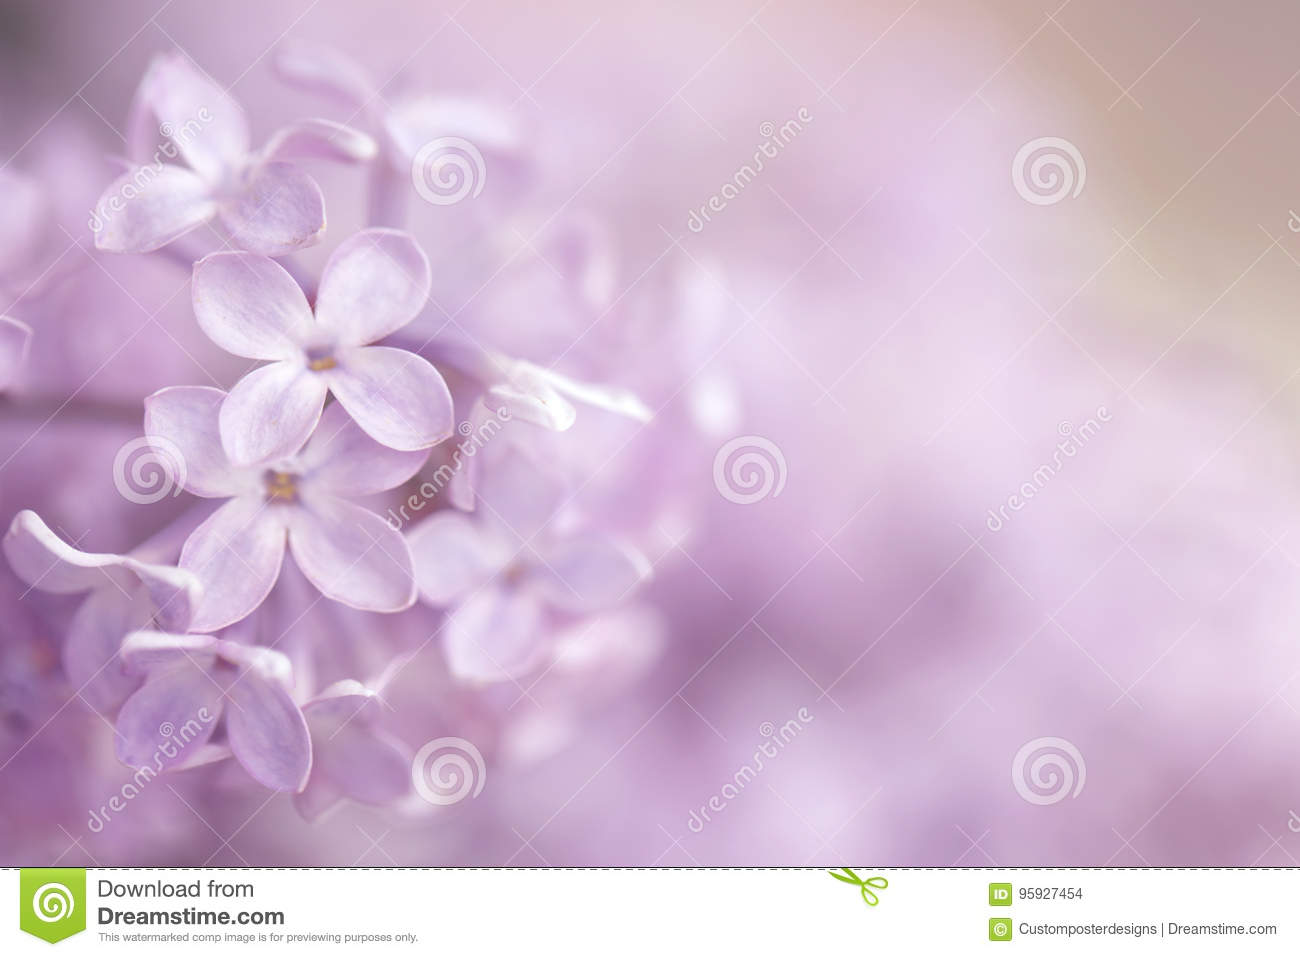 Download An Abstract Pink Purple Floral Background. Stock Photo - Image of horizontal, designed: 95927454